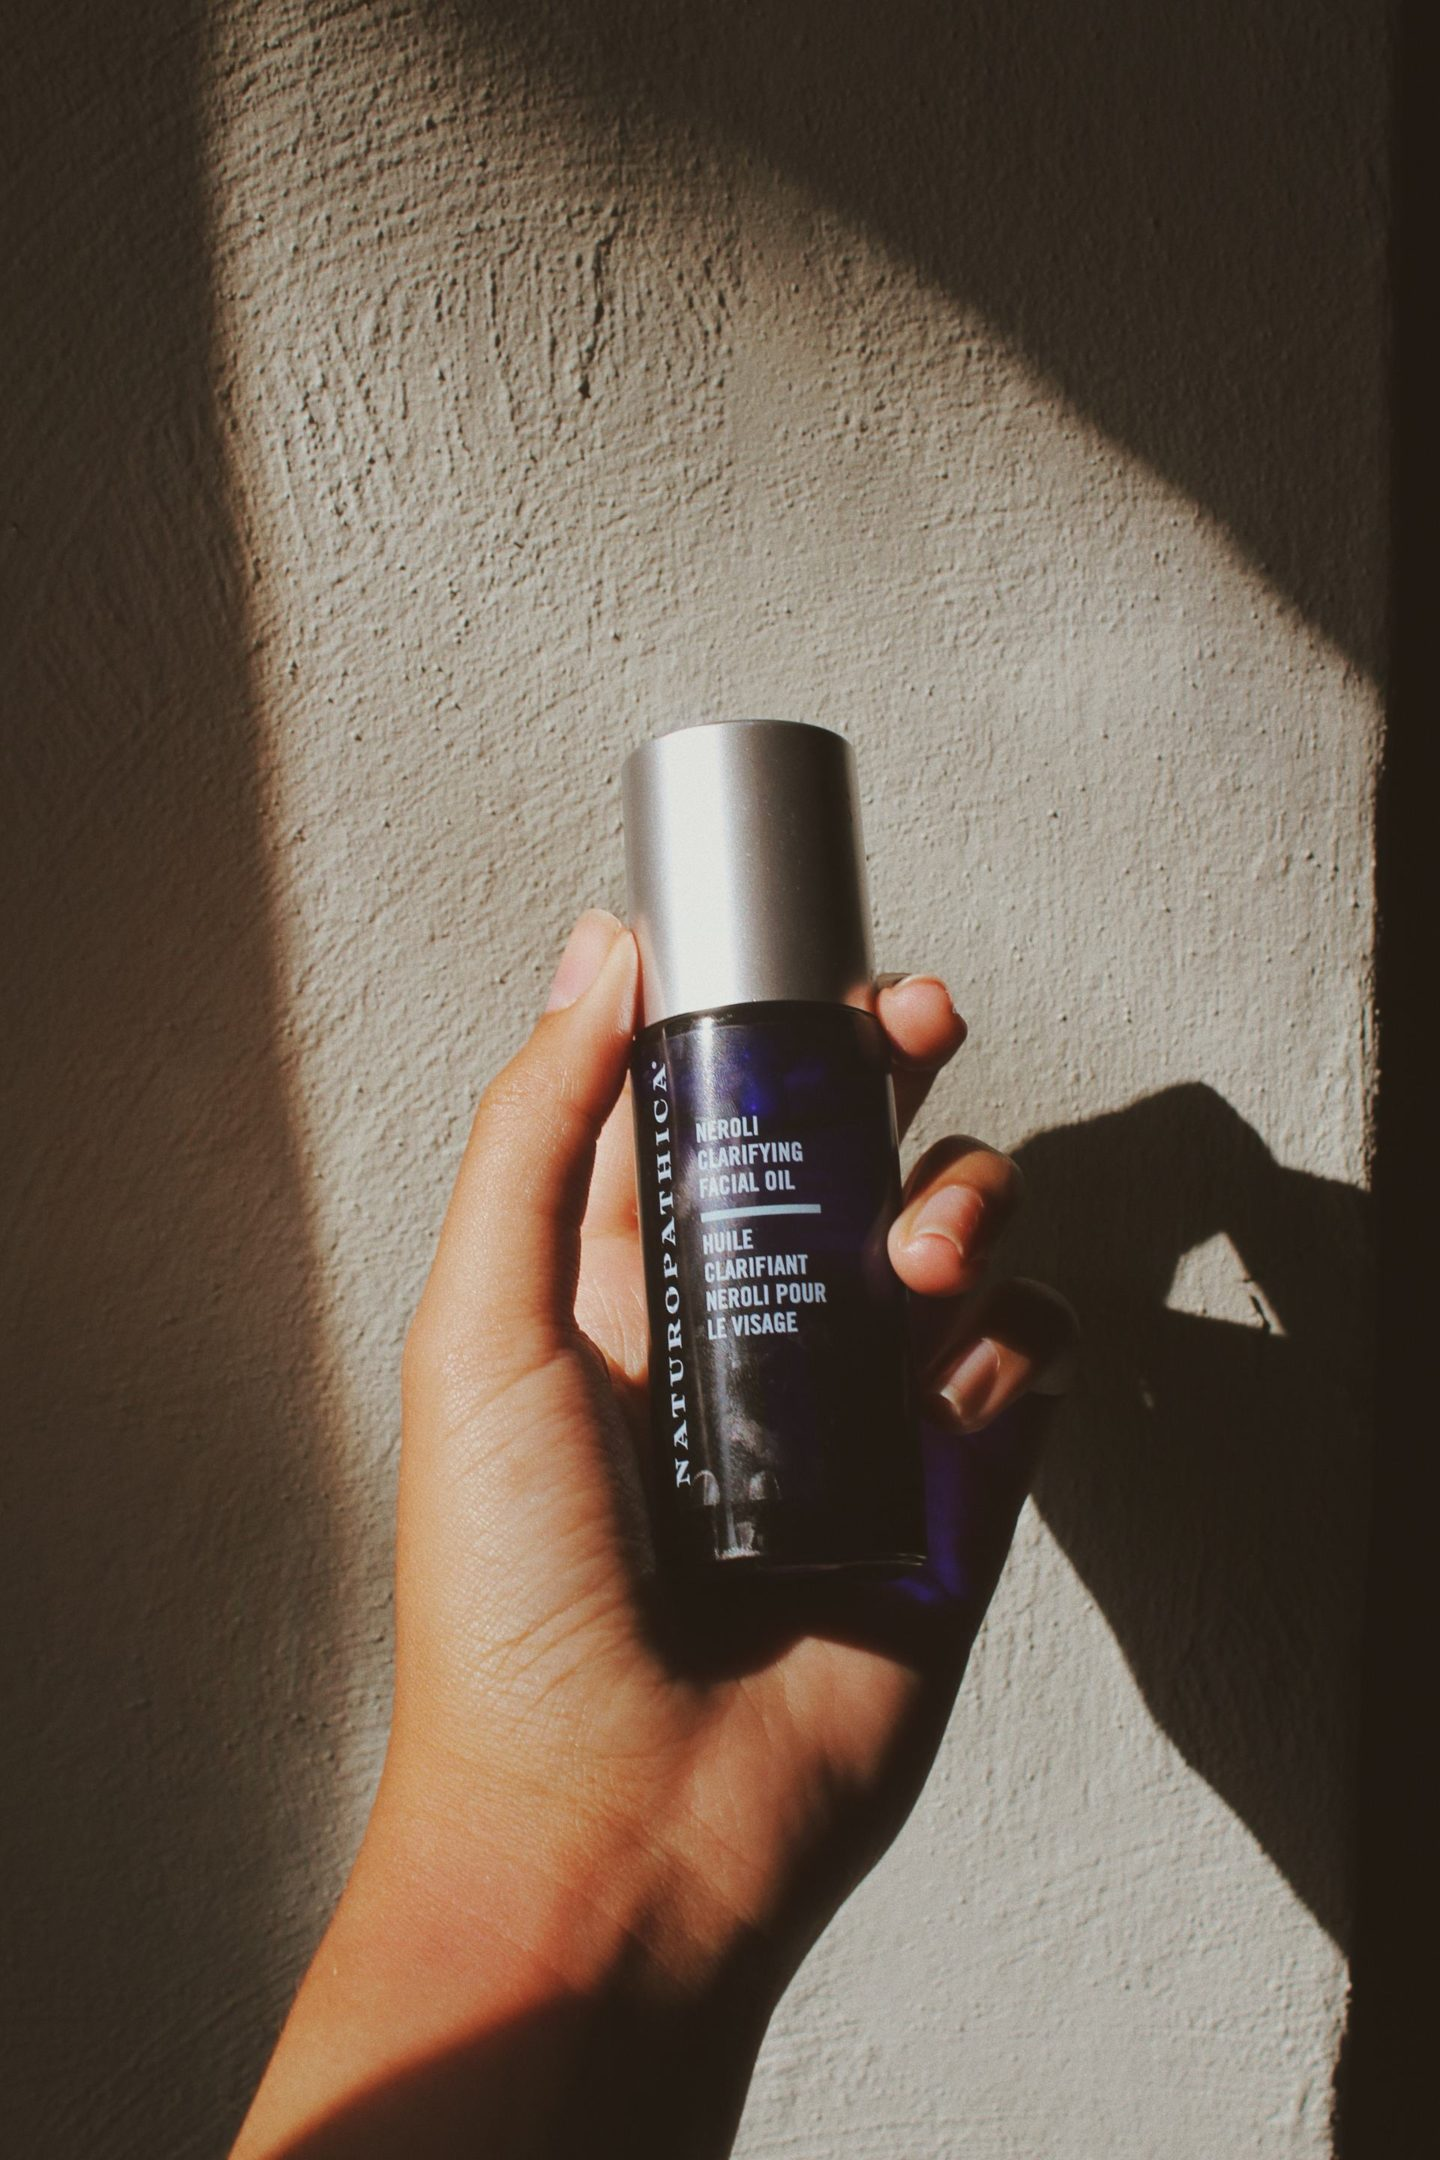 Naturopathica Neroli Clarifying Facial Oil held against a wall